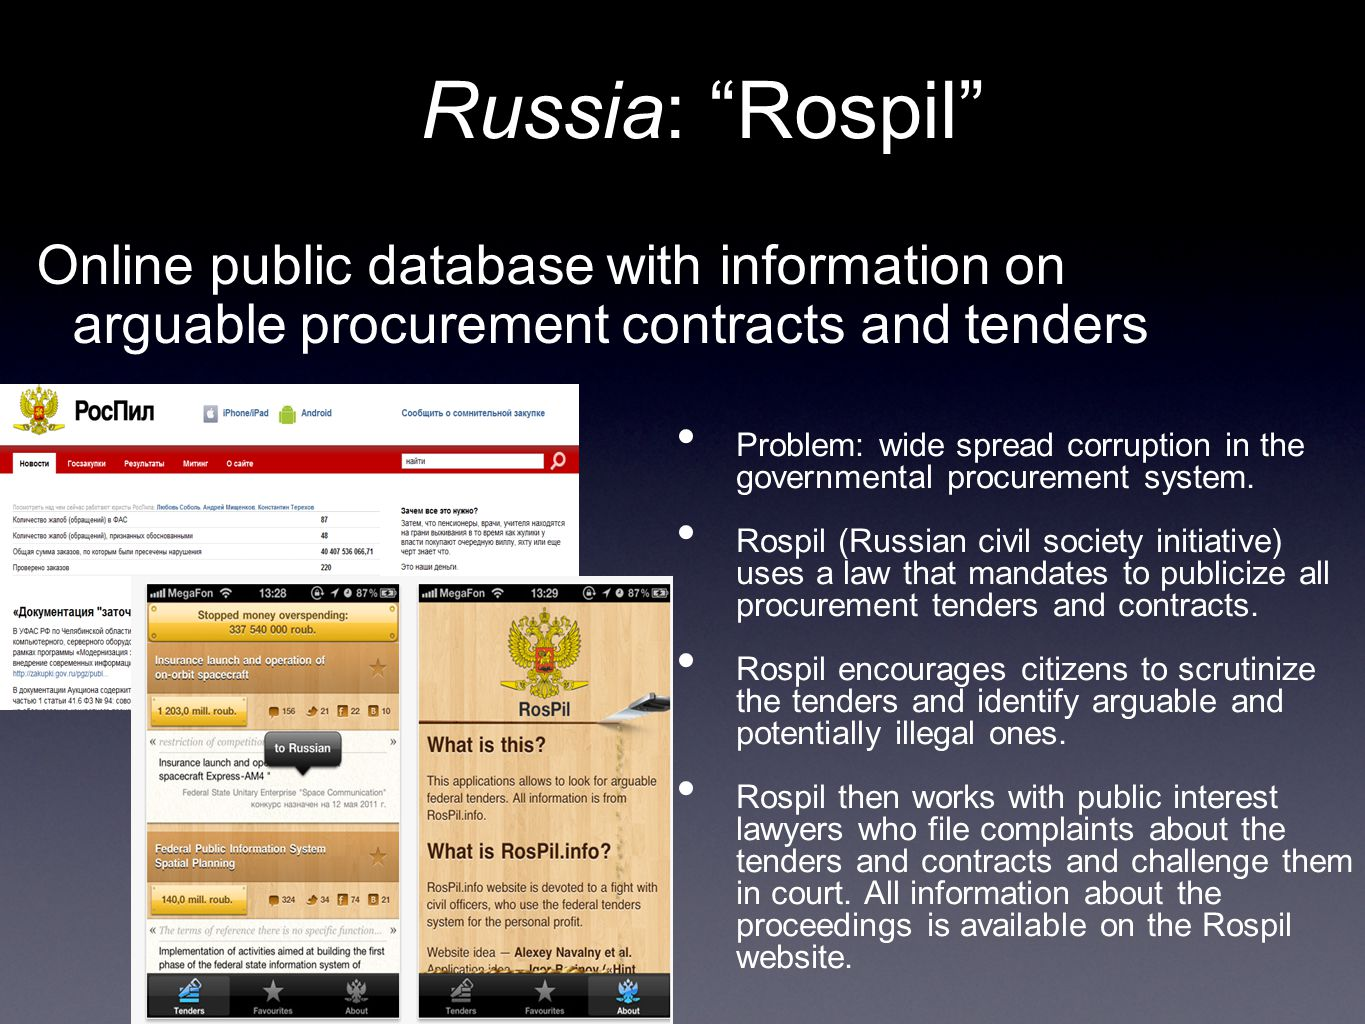 Russia: Rospil Problem: wide spread corruption in the governmental procurement system.